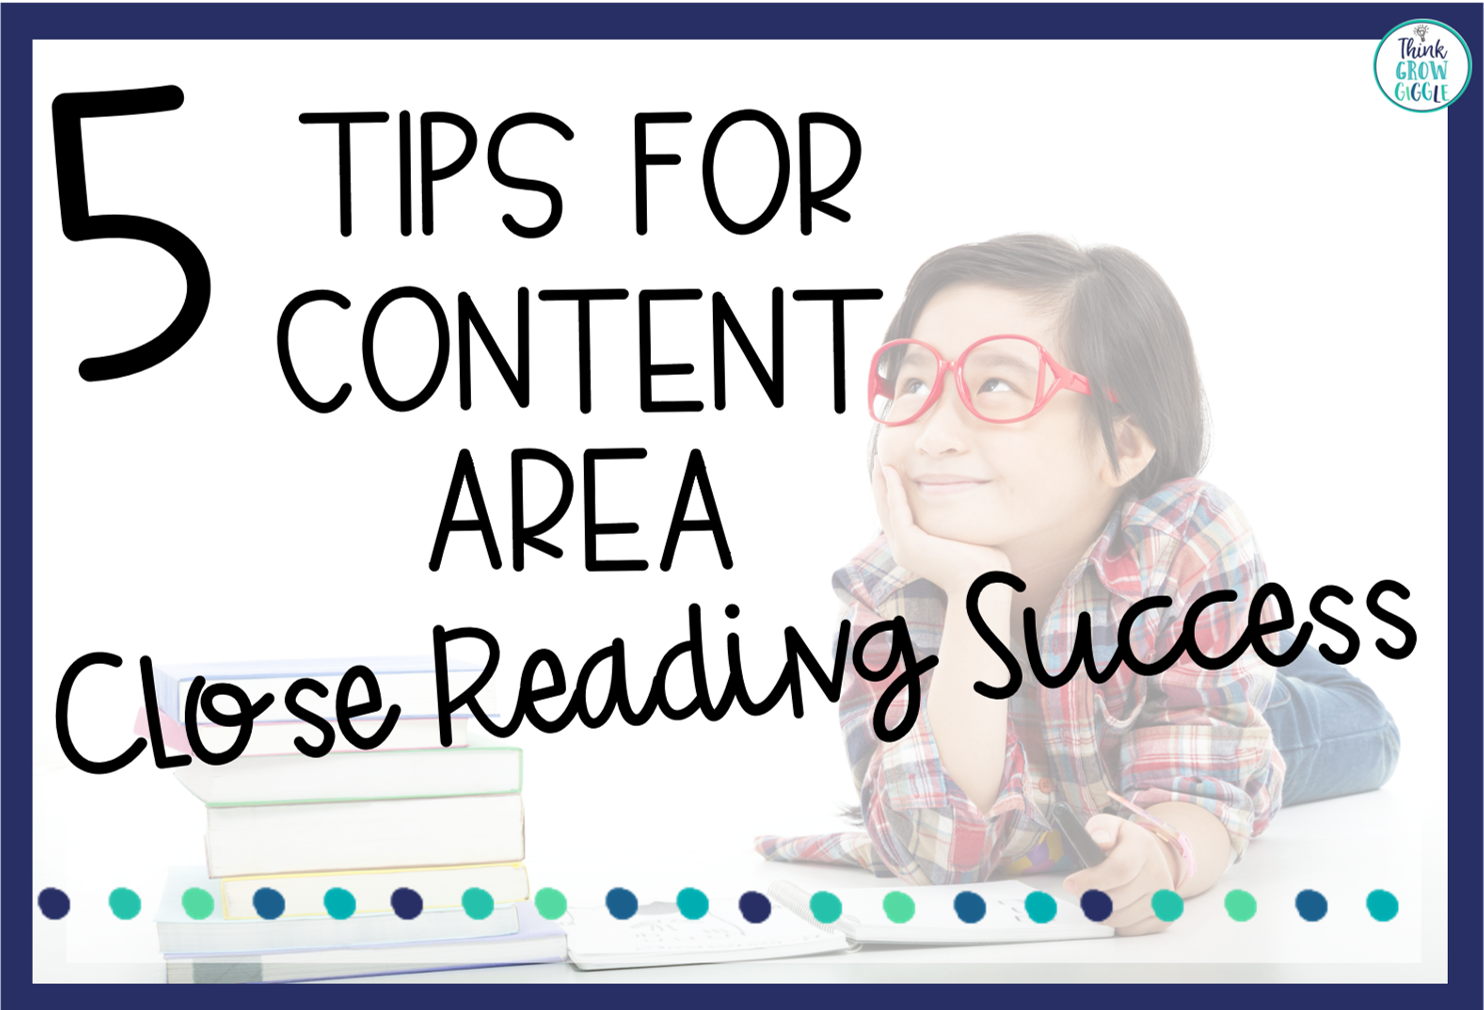 5 Tips for Content Area Close Reading Science